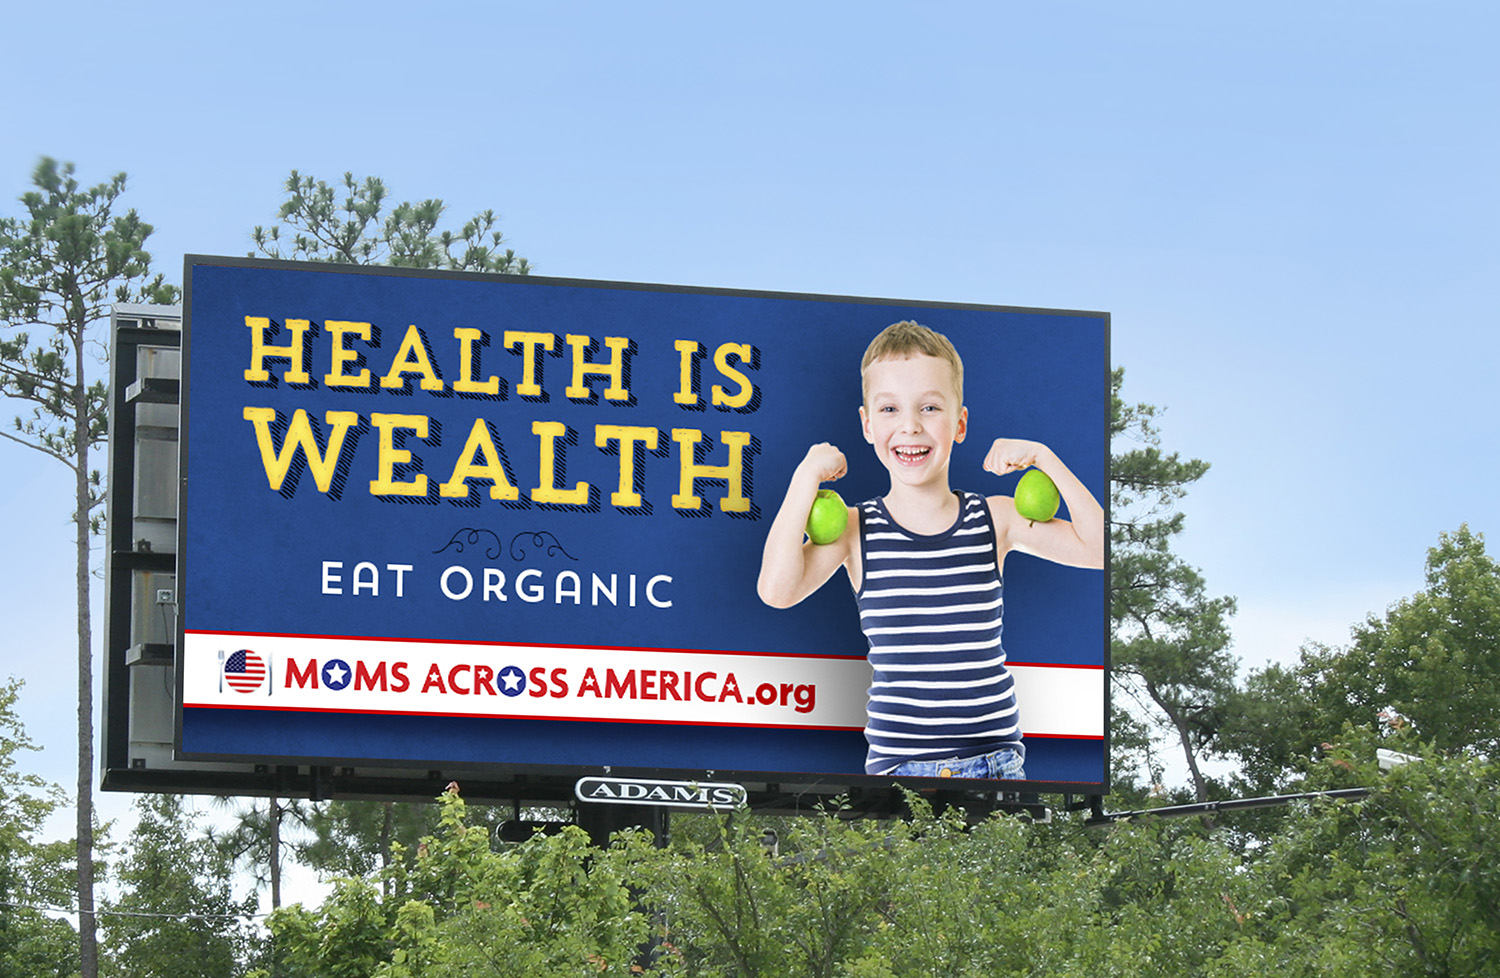 AOA_Moms_Across_America_health_is_wealth_digital_poster_w1_mockup.jpg